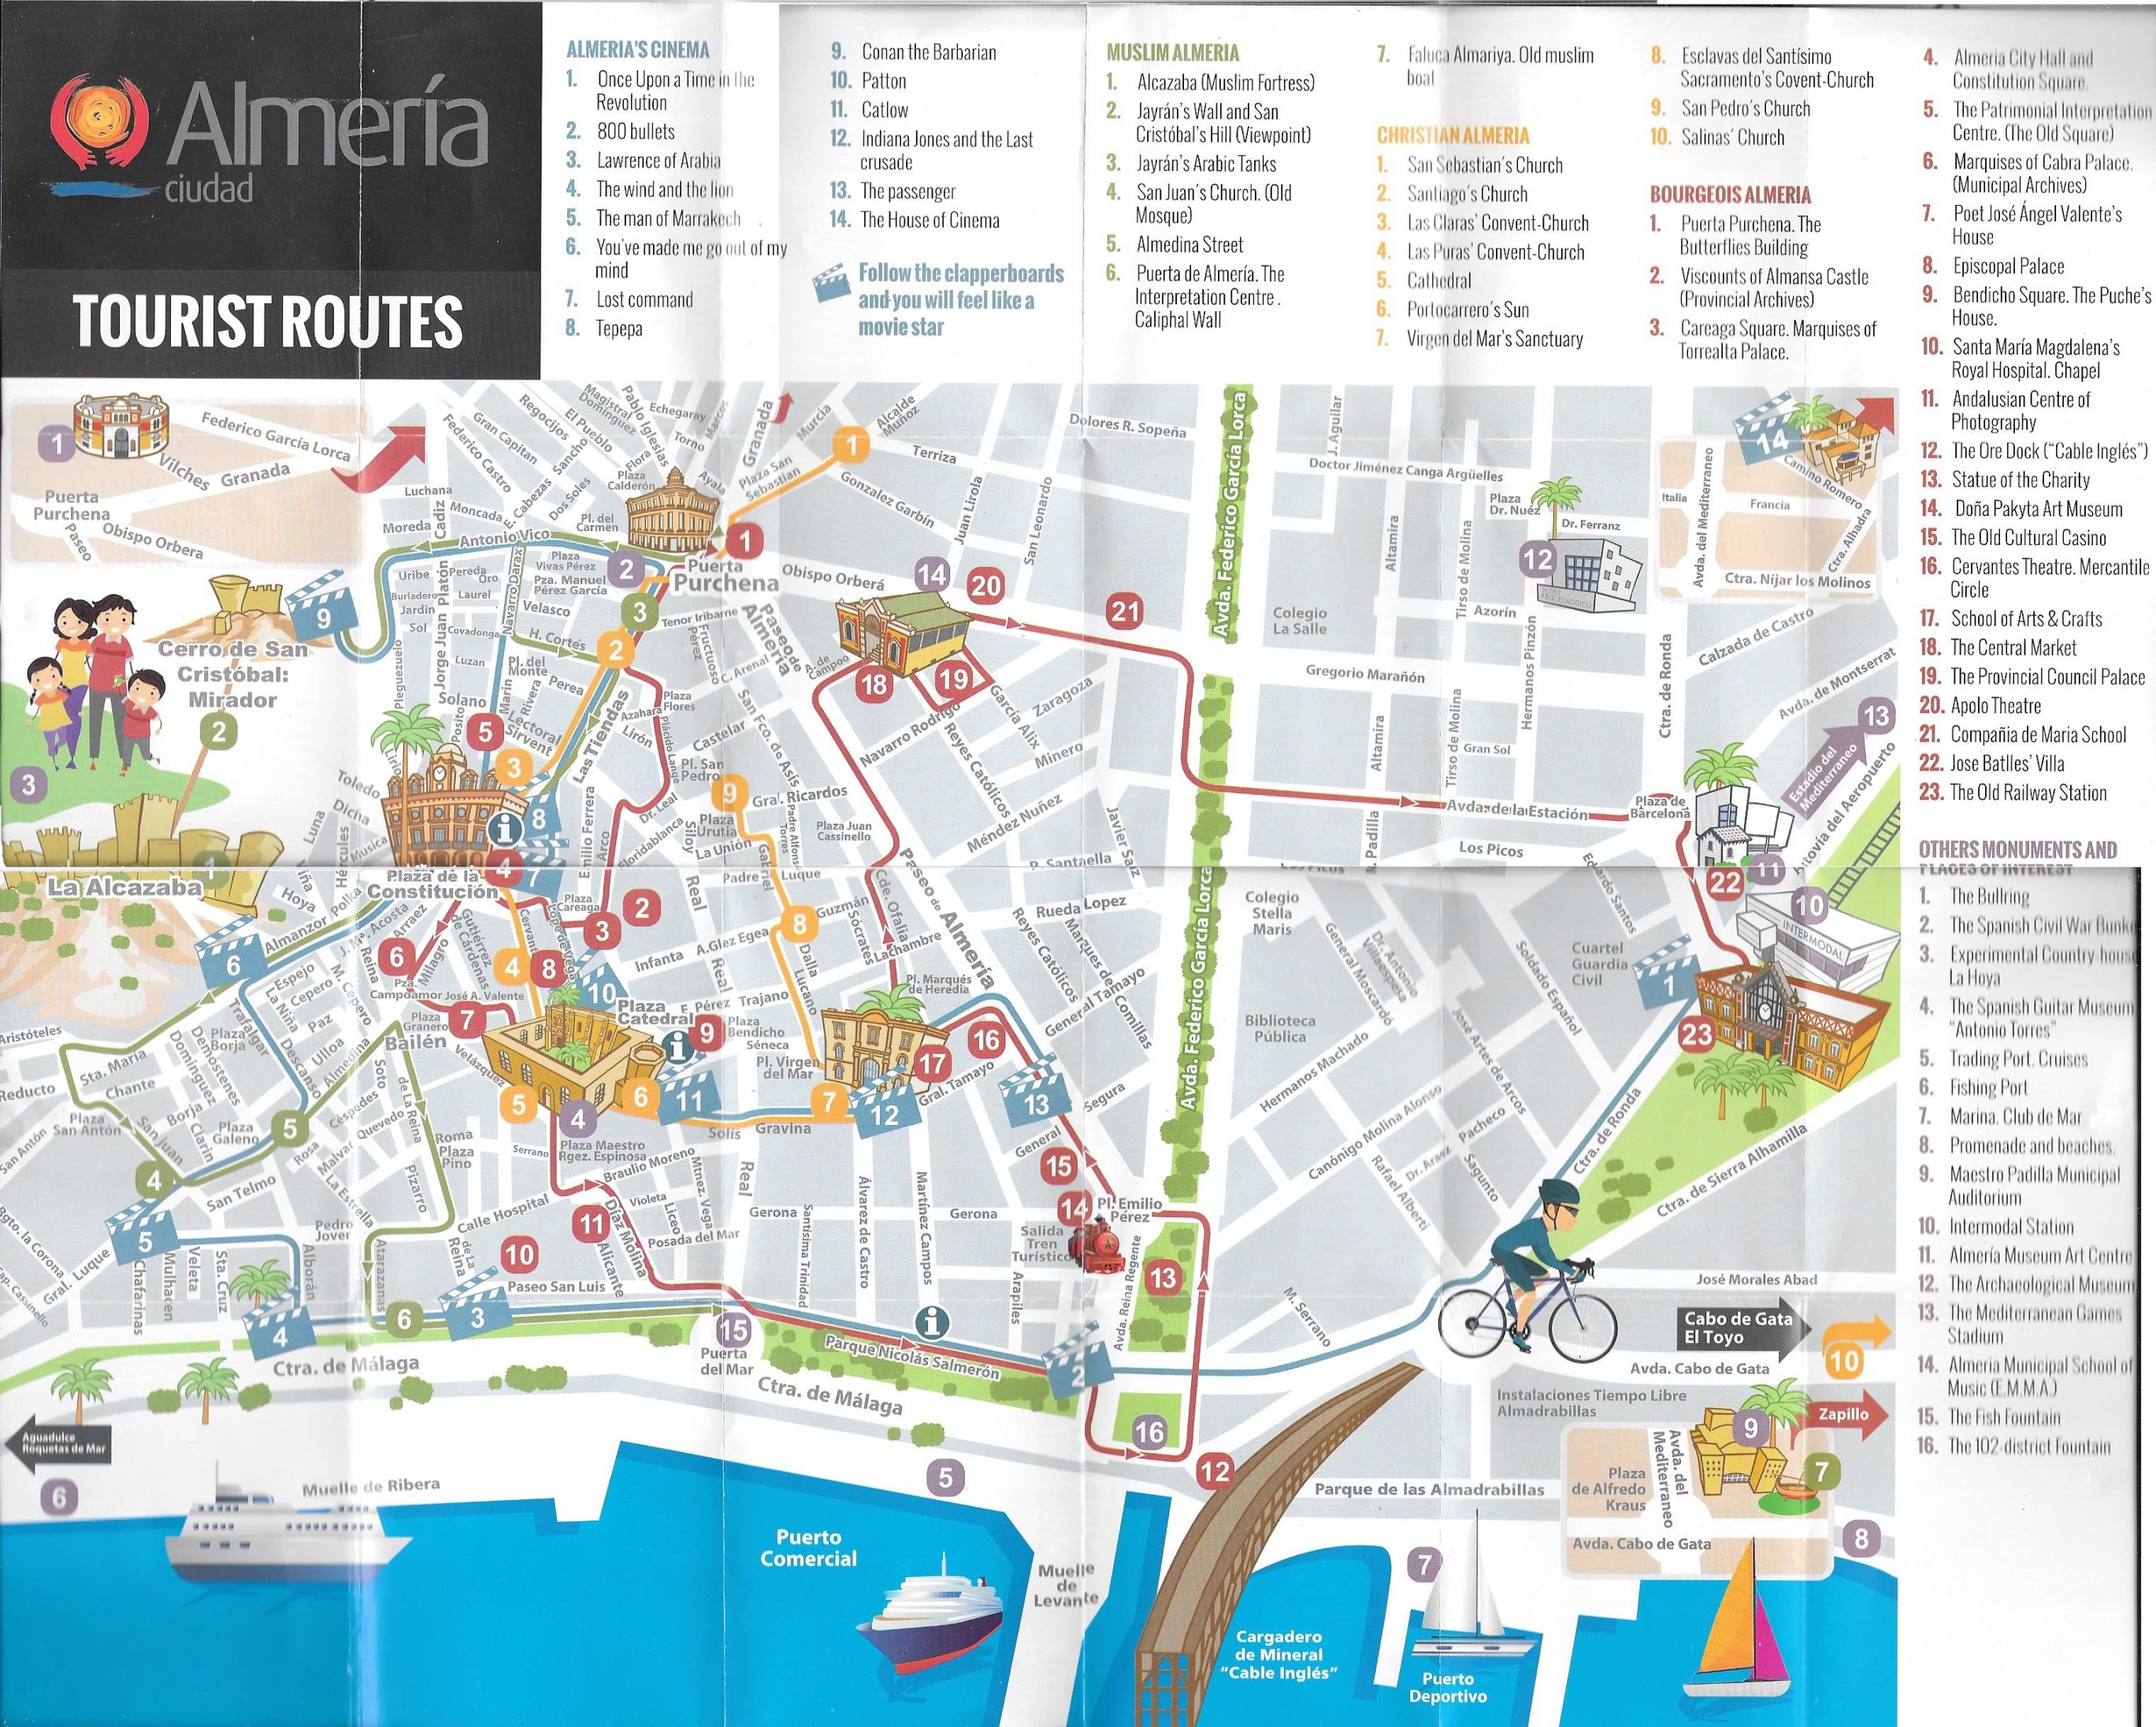 Almería tourist attractions map